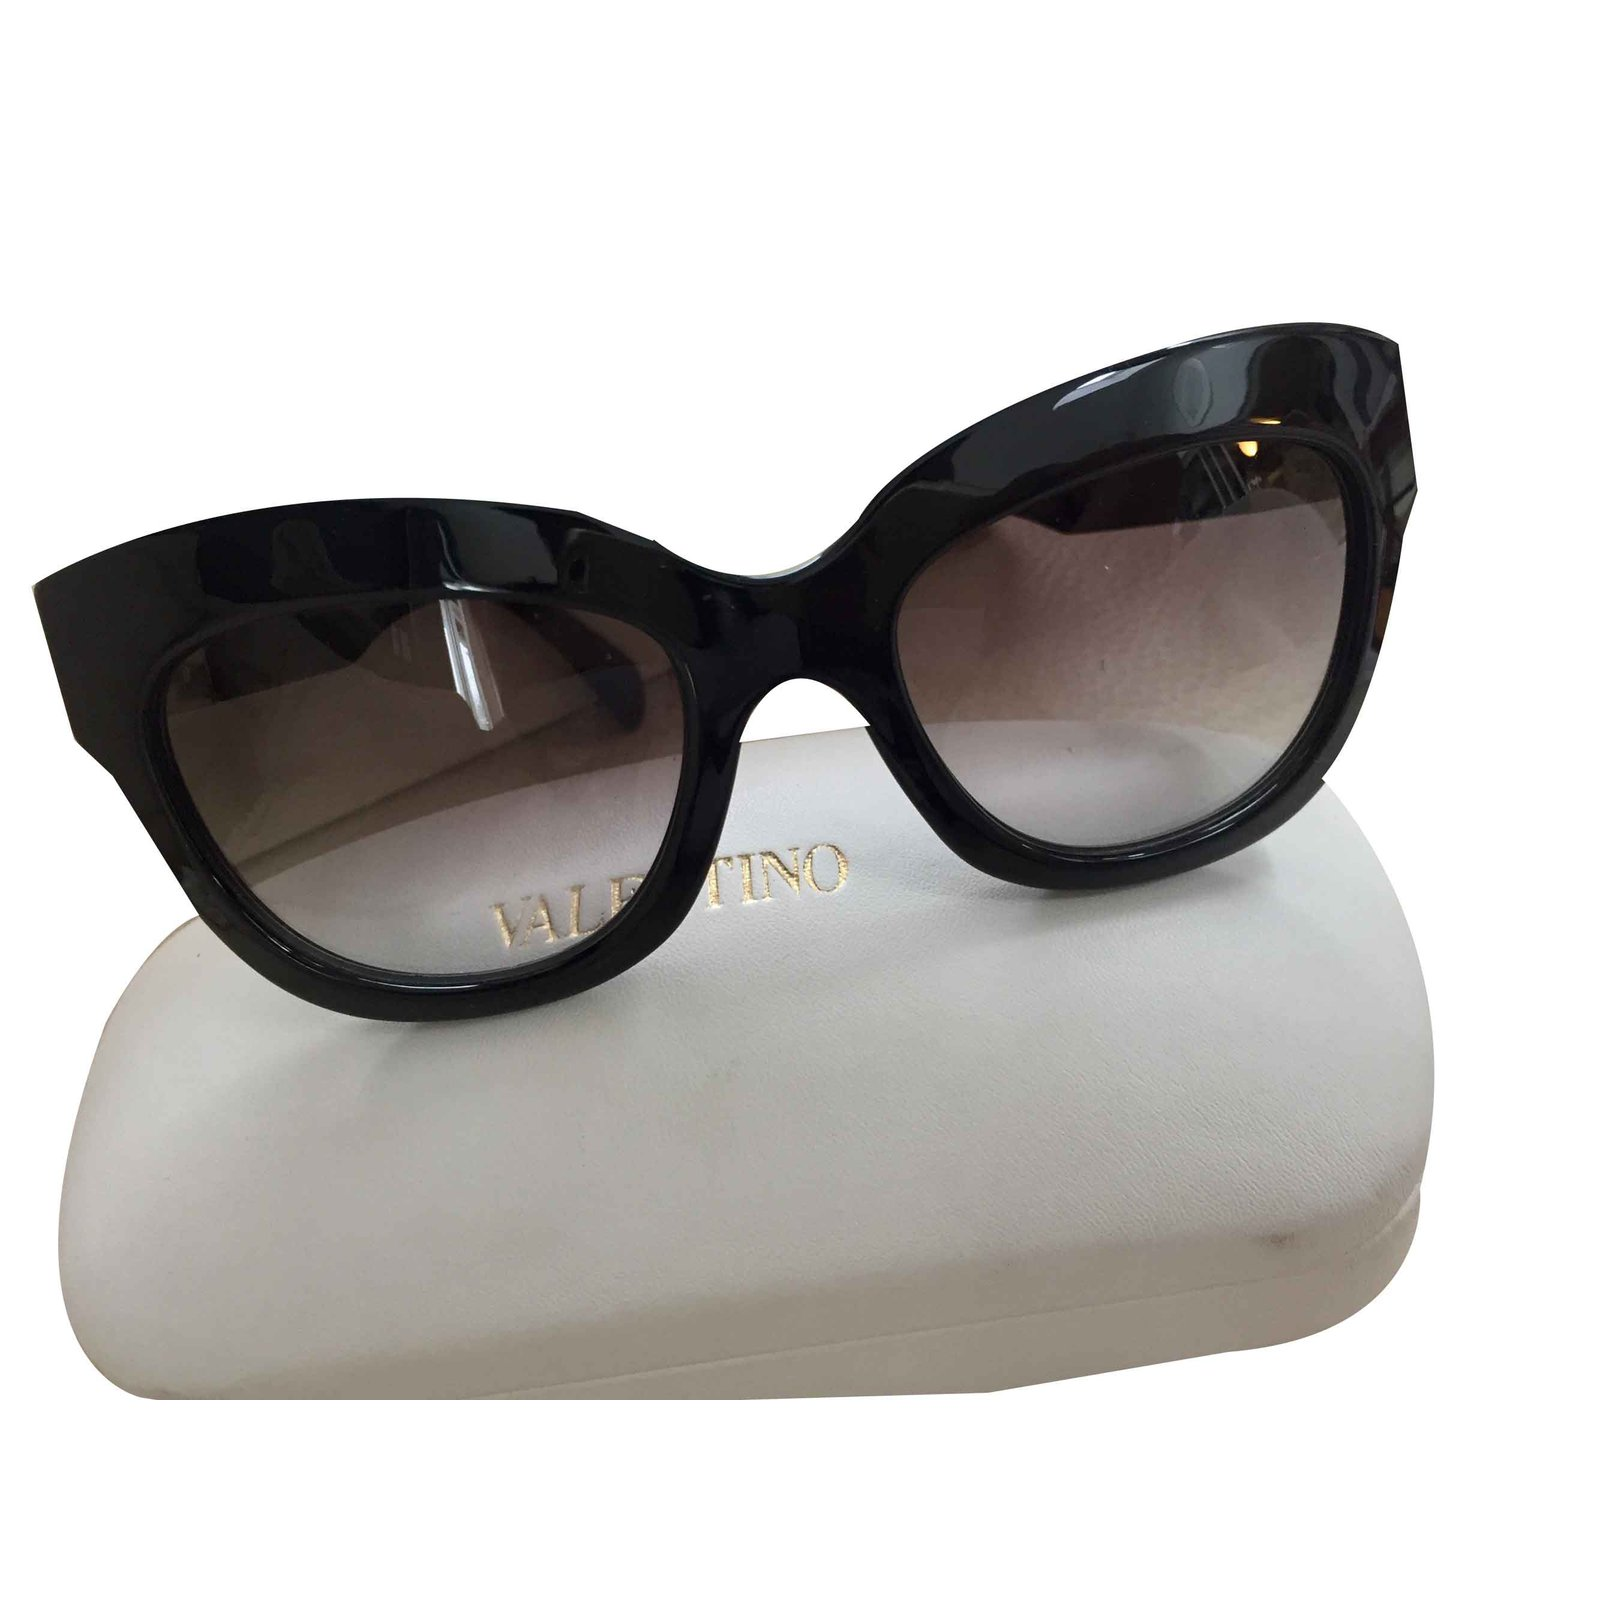 a2e2009f6440 Valentino Sunglasses Sunglasses Other Black ref.107059 - Joli Closet